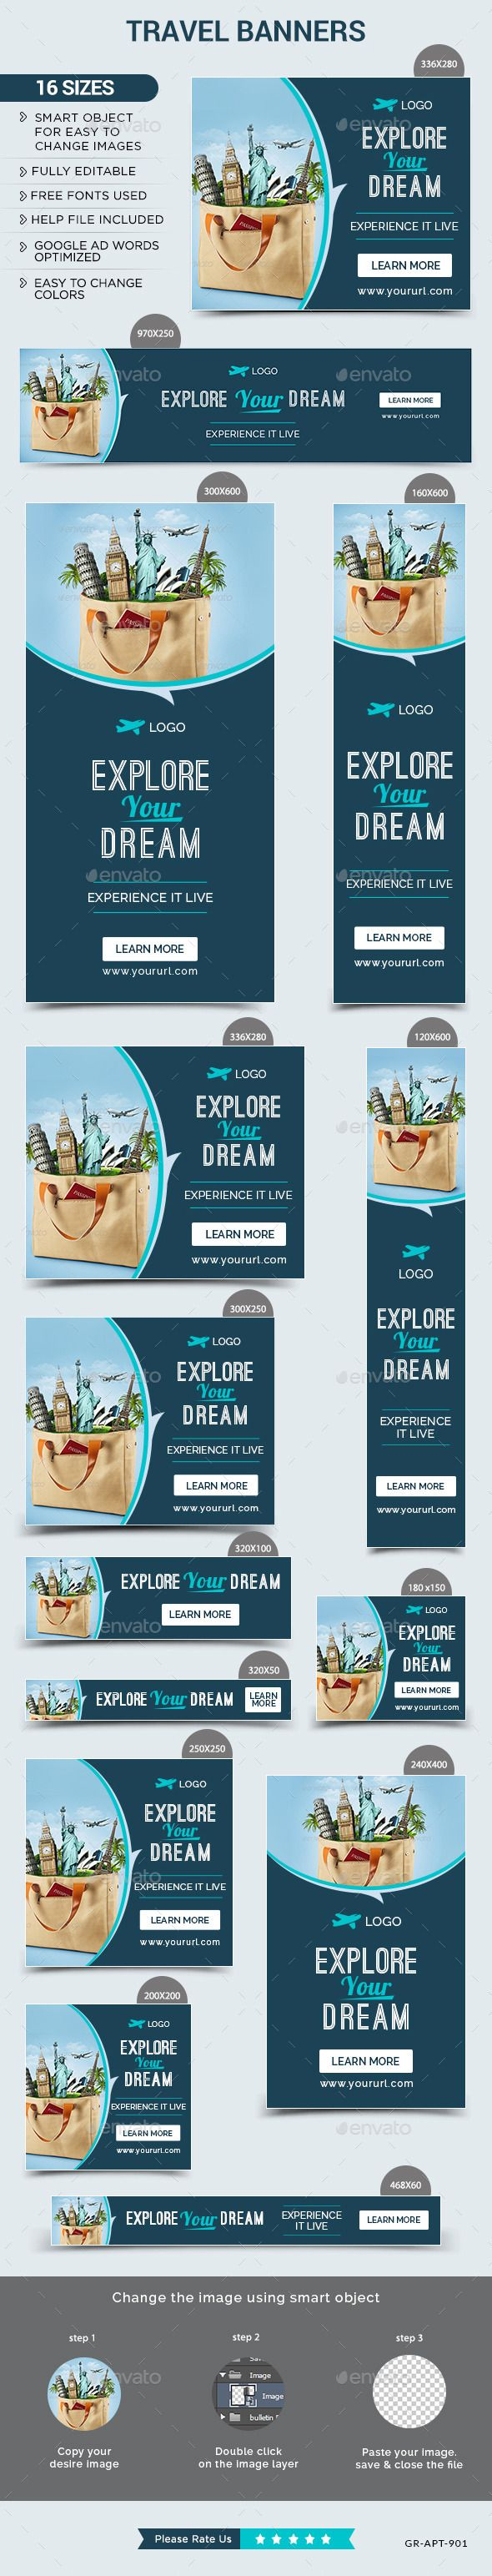 Travel Web Banners Template #design #ads Download: http://graphicriver.net/item/travel-banners/12997452?ref=ksioks